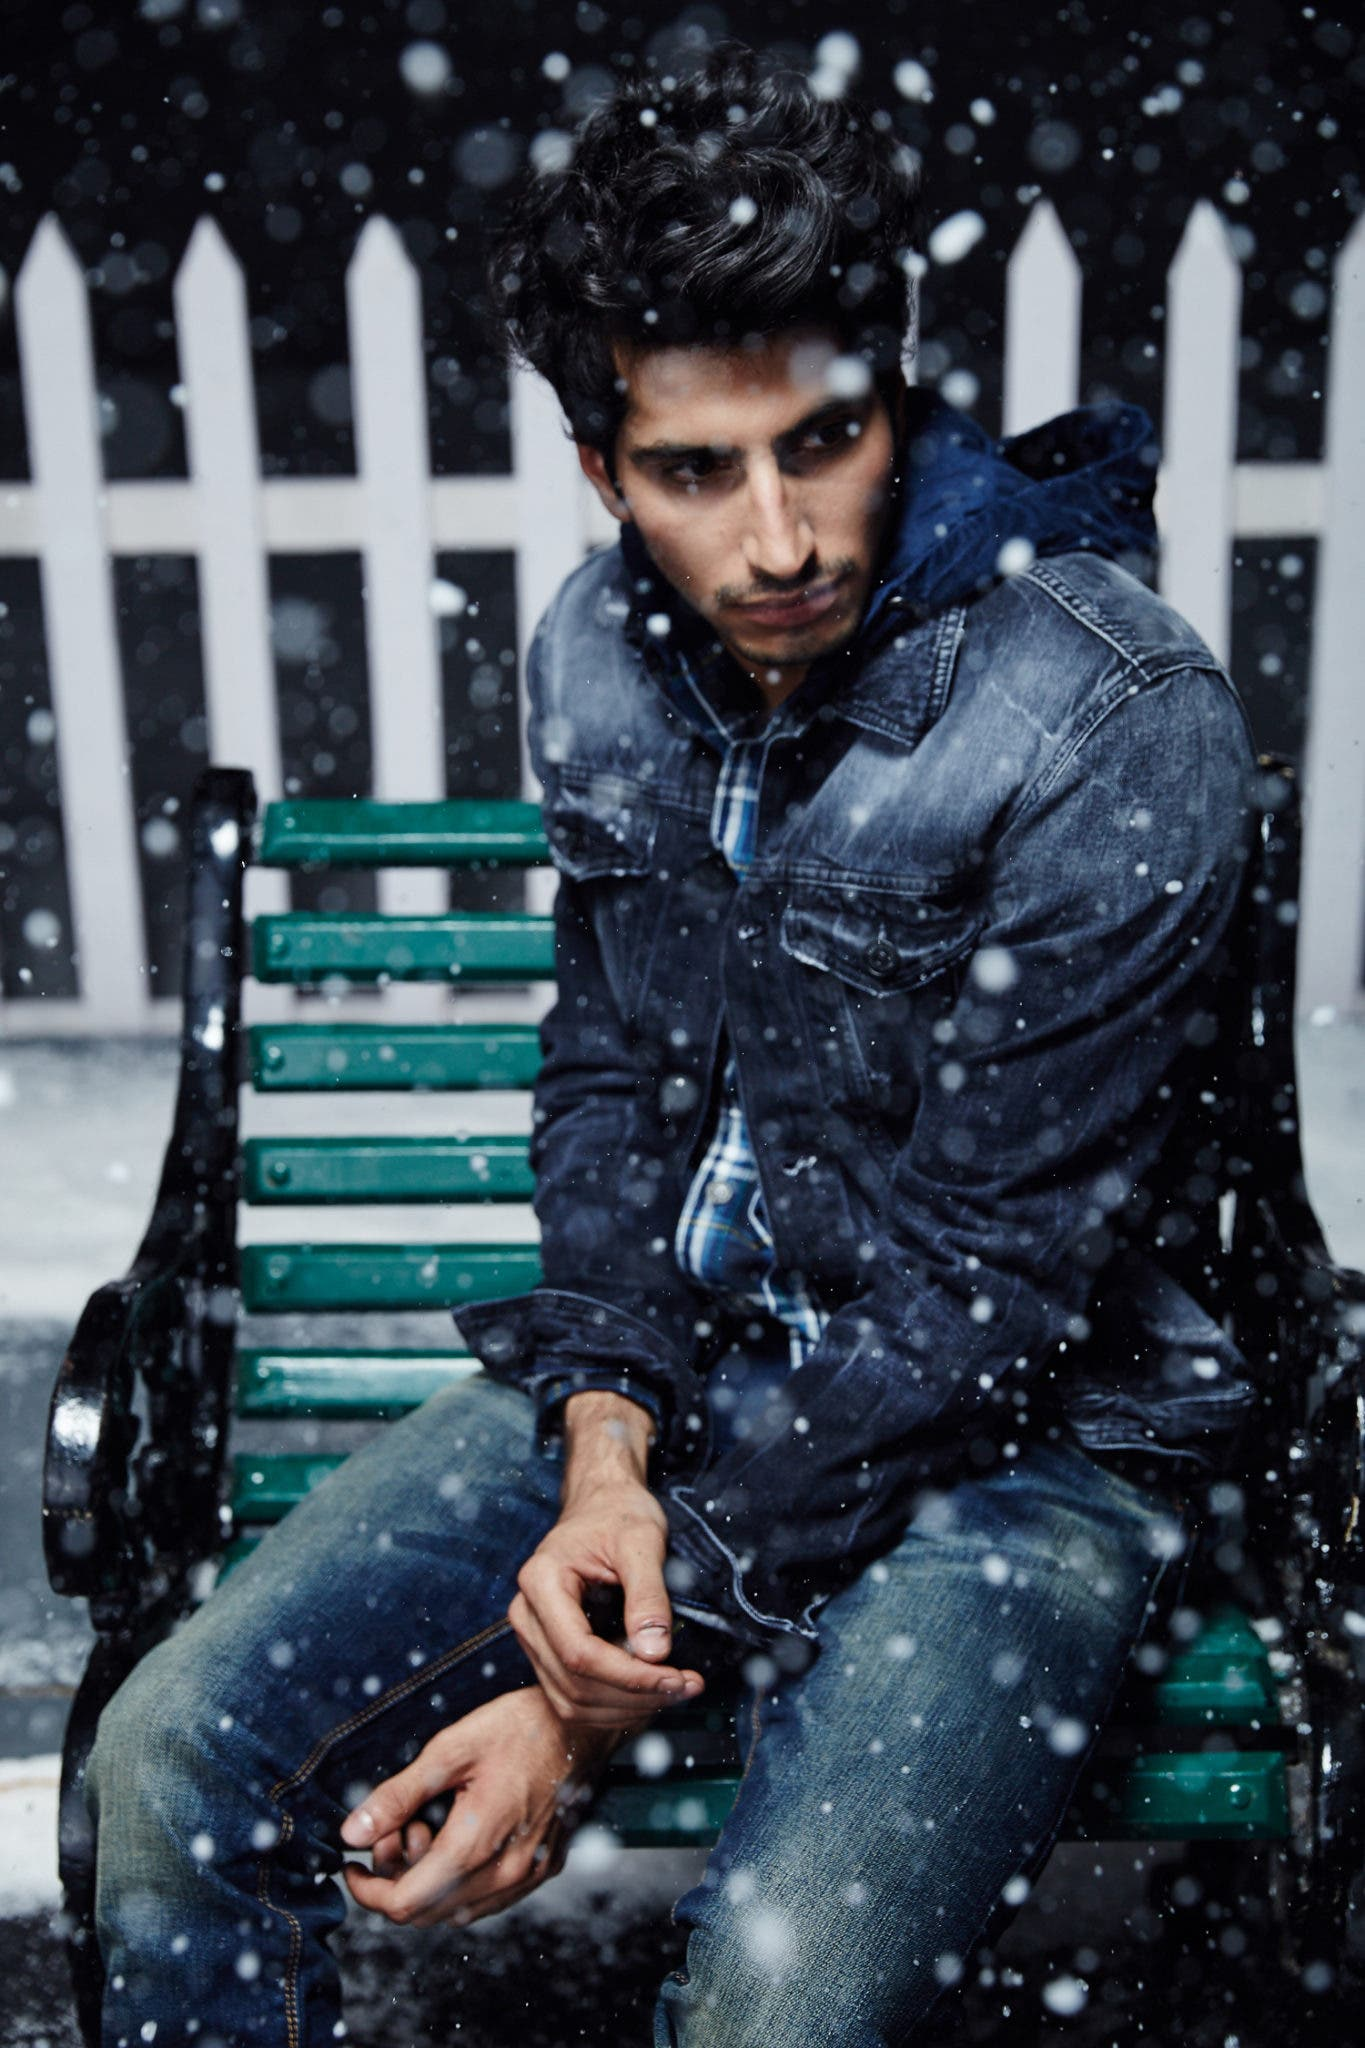 """Creating the Photograph: Aashith Shetty's """"Let It Snow"""" - The Phoblographer"""